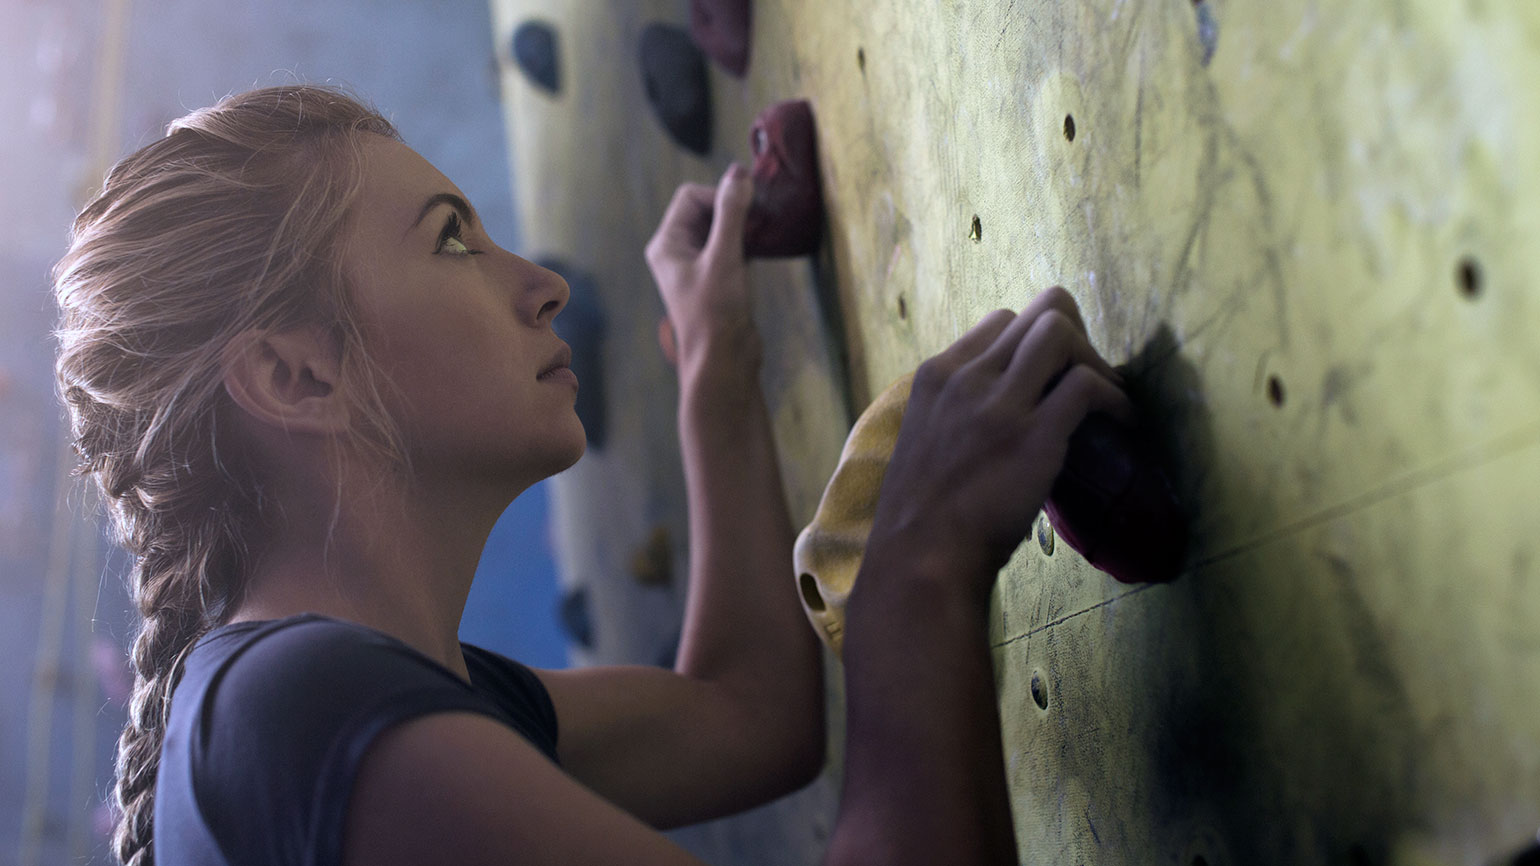 A woman pauses while climbing wall